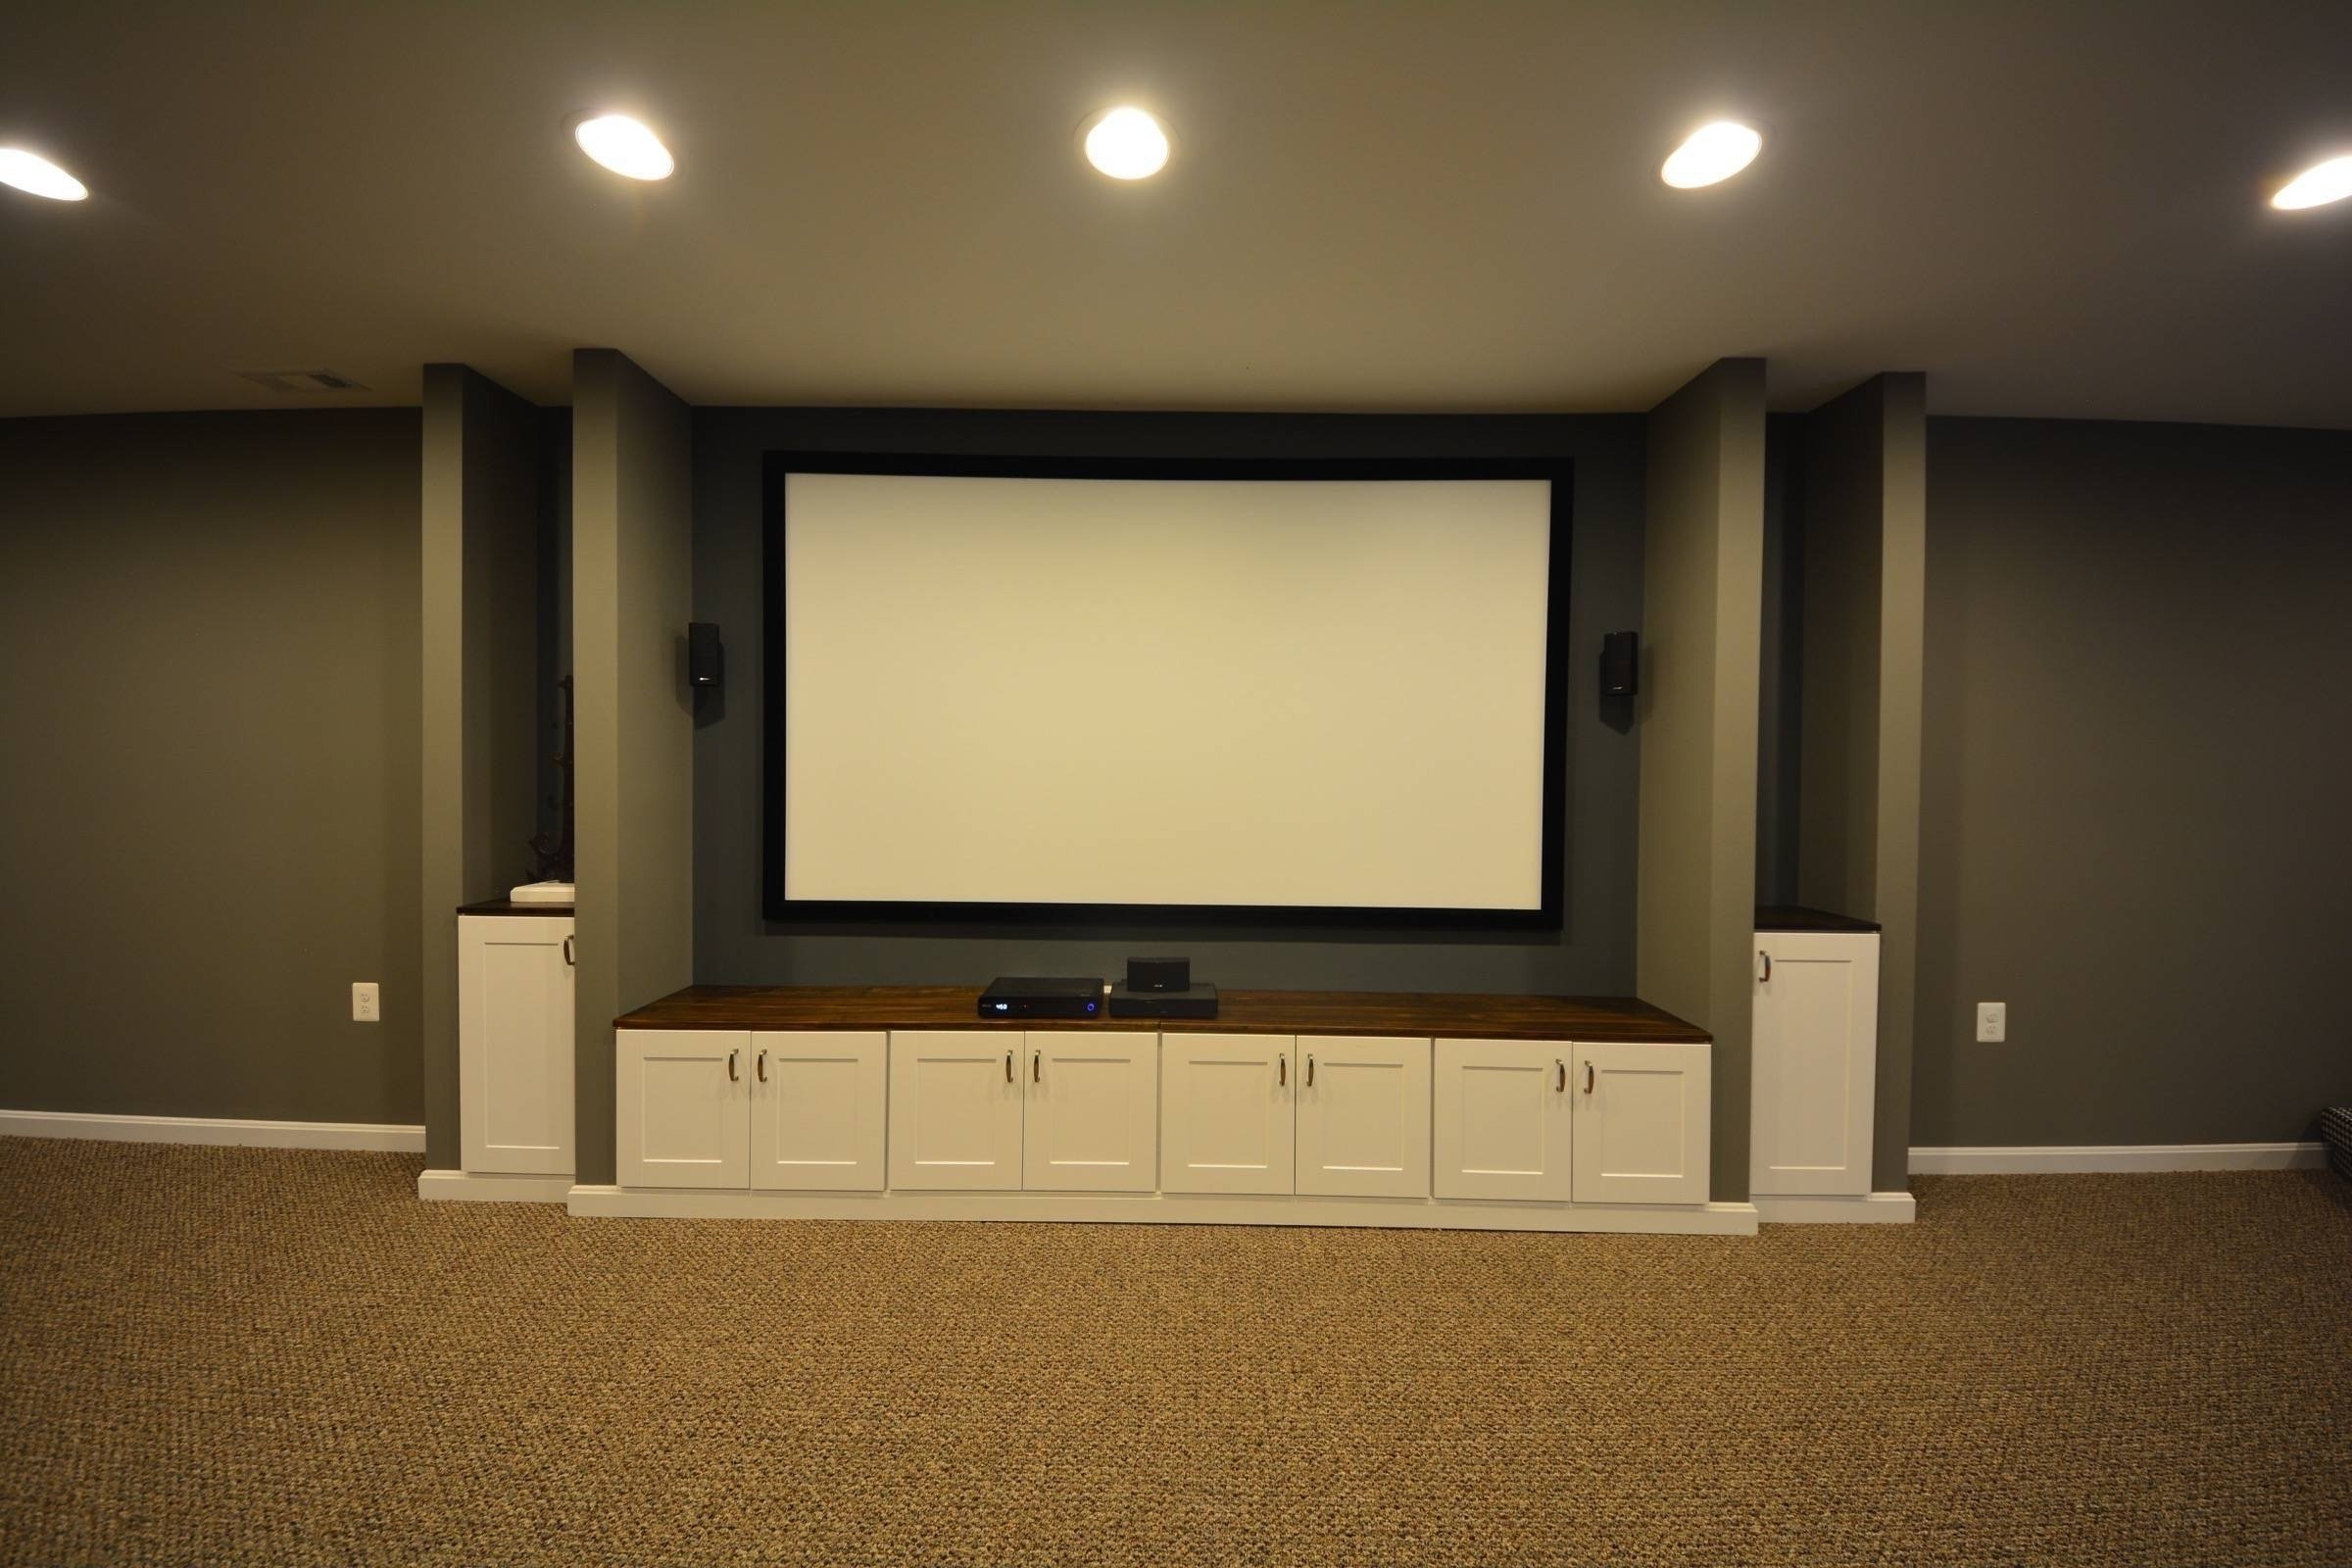 10 Awesome Built In Entertainment Center Ideas basement entertainment center ideas basement masters 2020